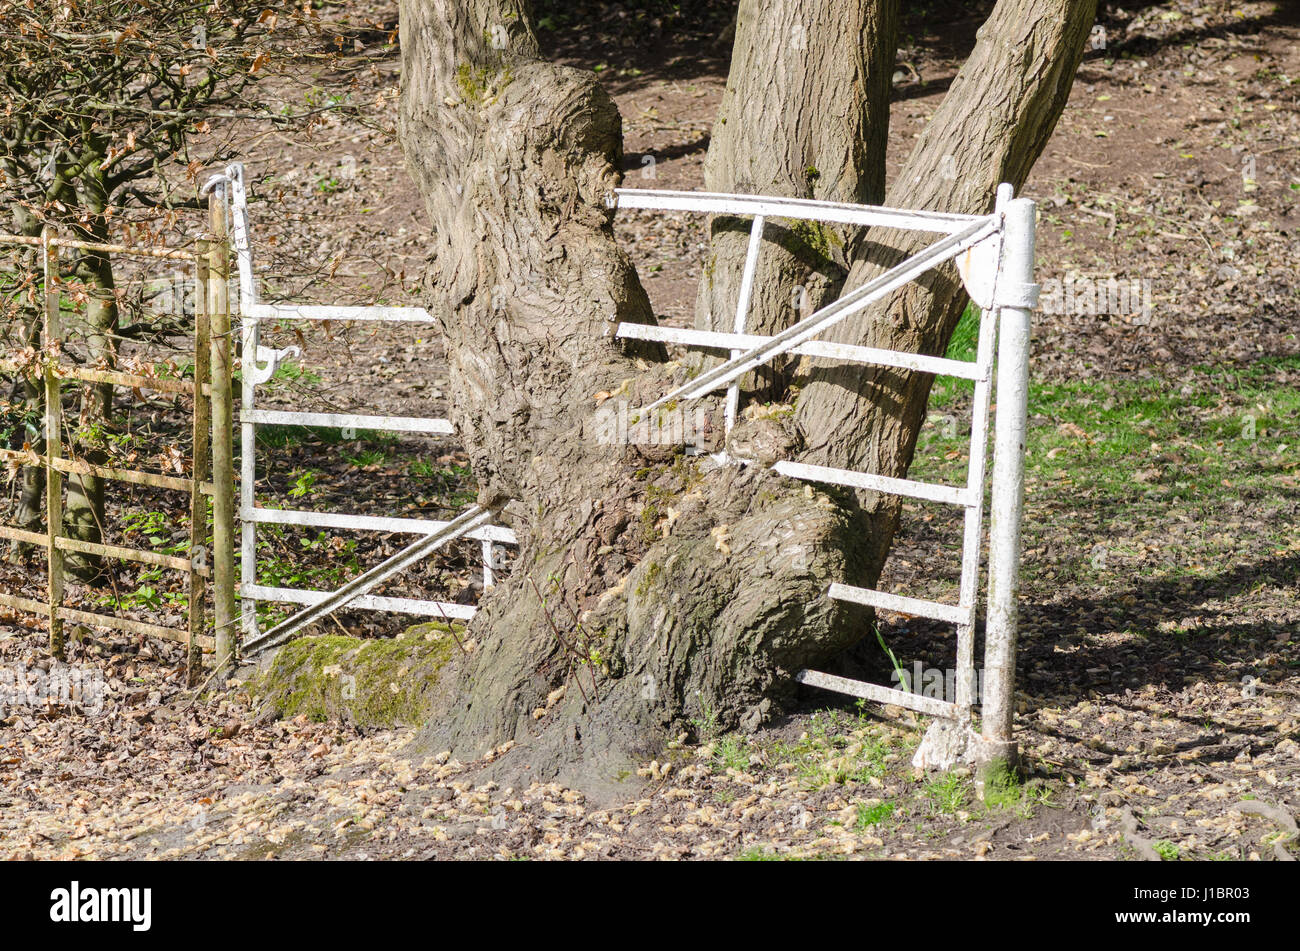 Old white metal gate with tree grown around it - Stock Image